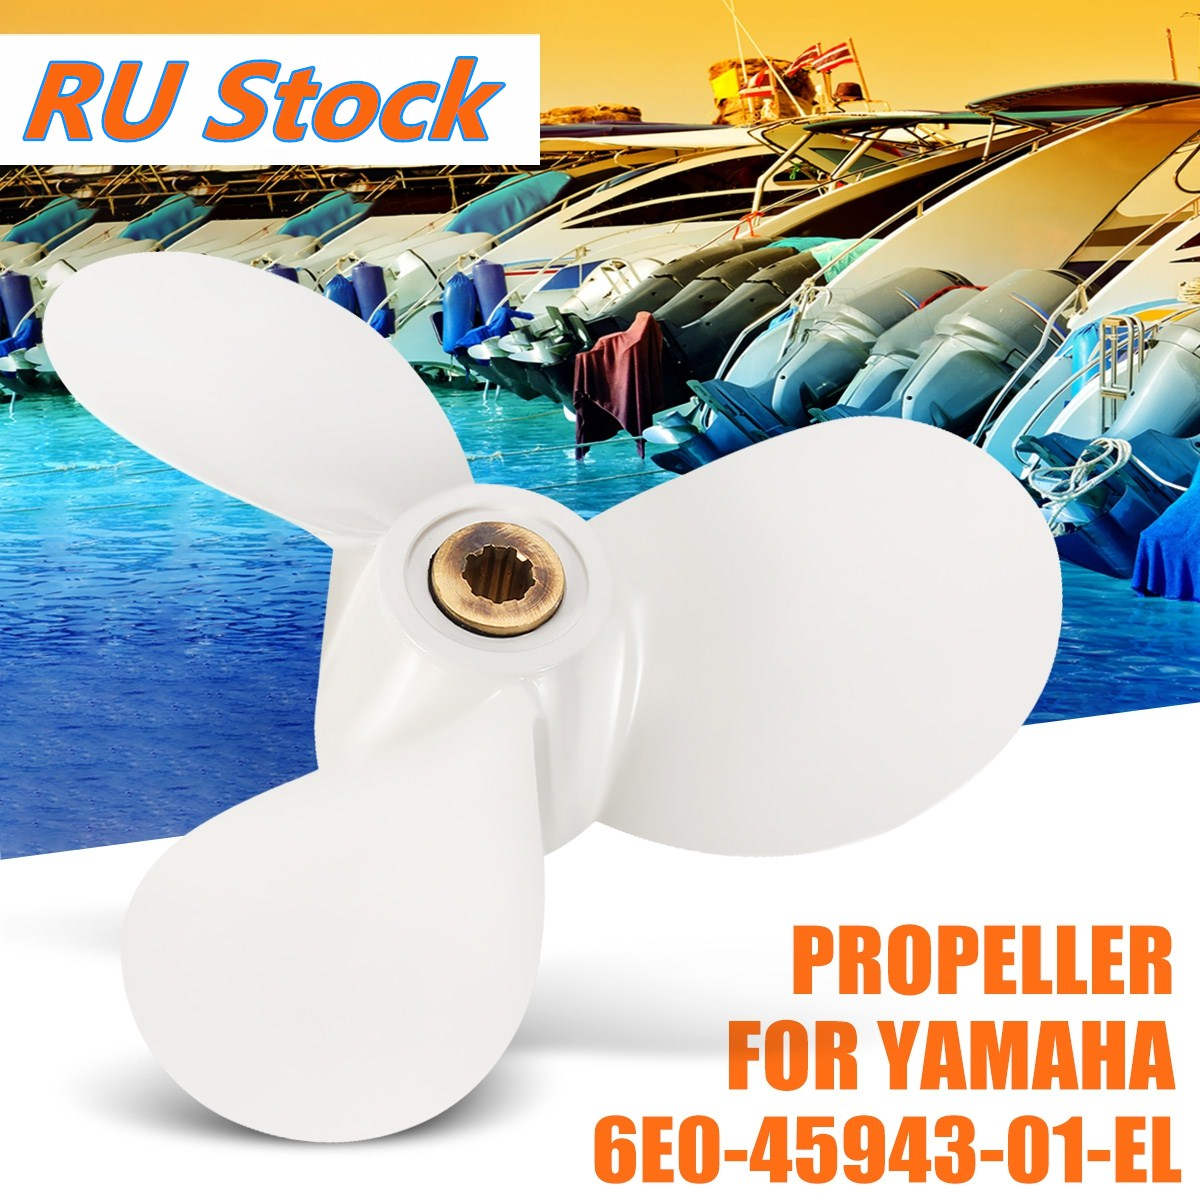 1pcs Boat Motors Marine Propellers For Yamaha Outboard 4hp 5hp 6hp Engine 71/2x 7-ba #6e0-45943-01-el Radius 9.5 Cm White Colour Back To Search Resultsautomobiles & Motorcycles